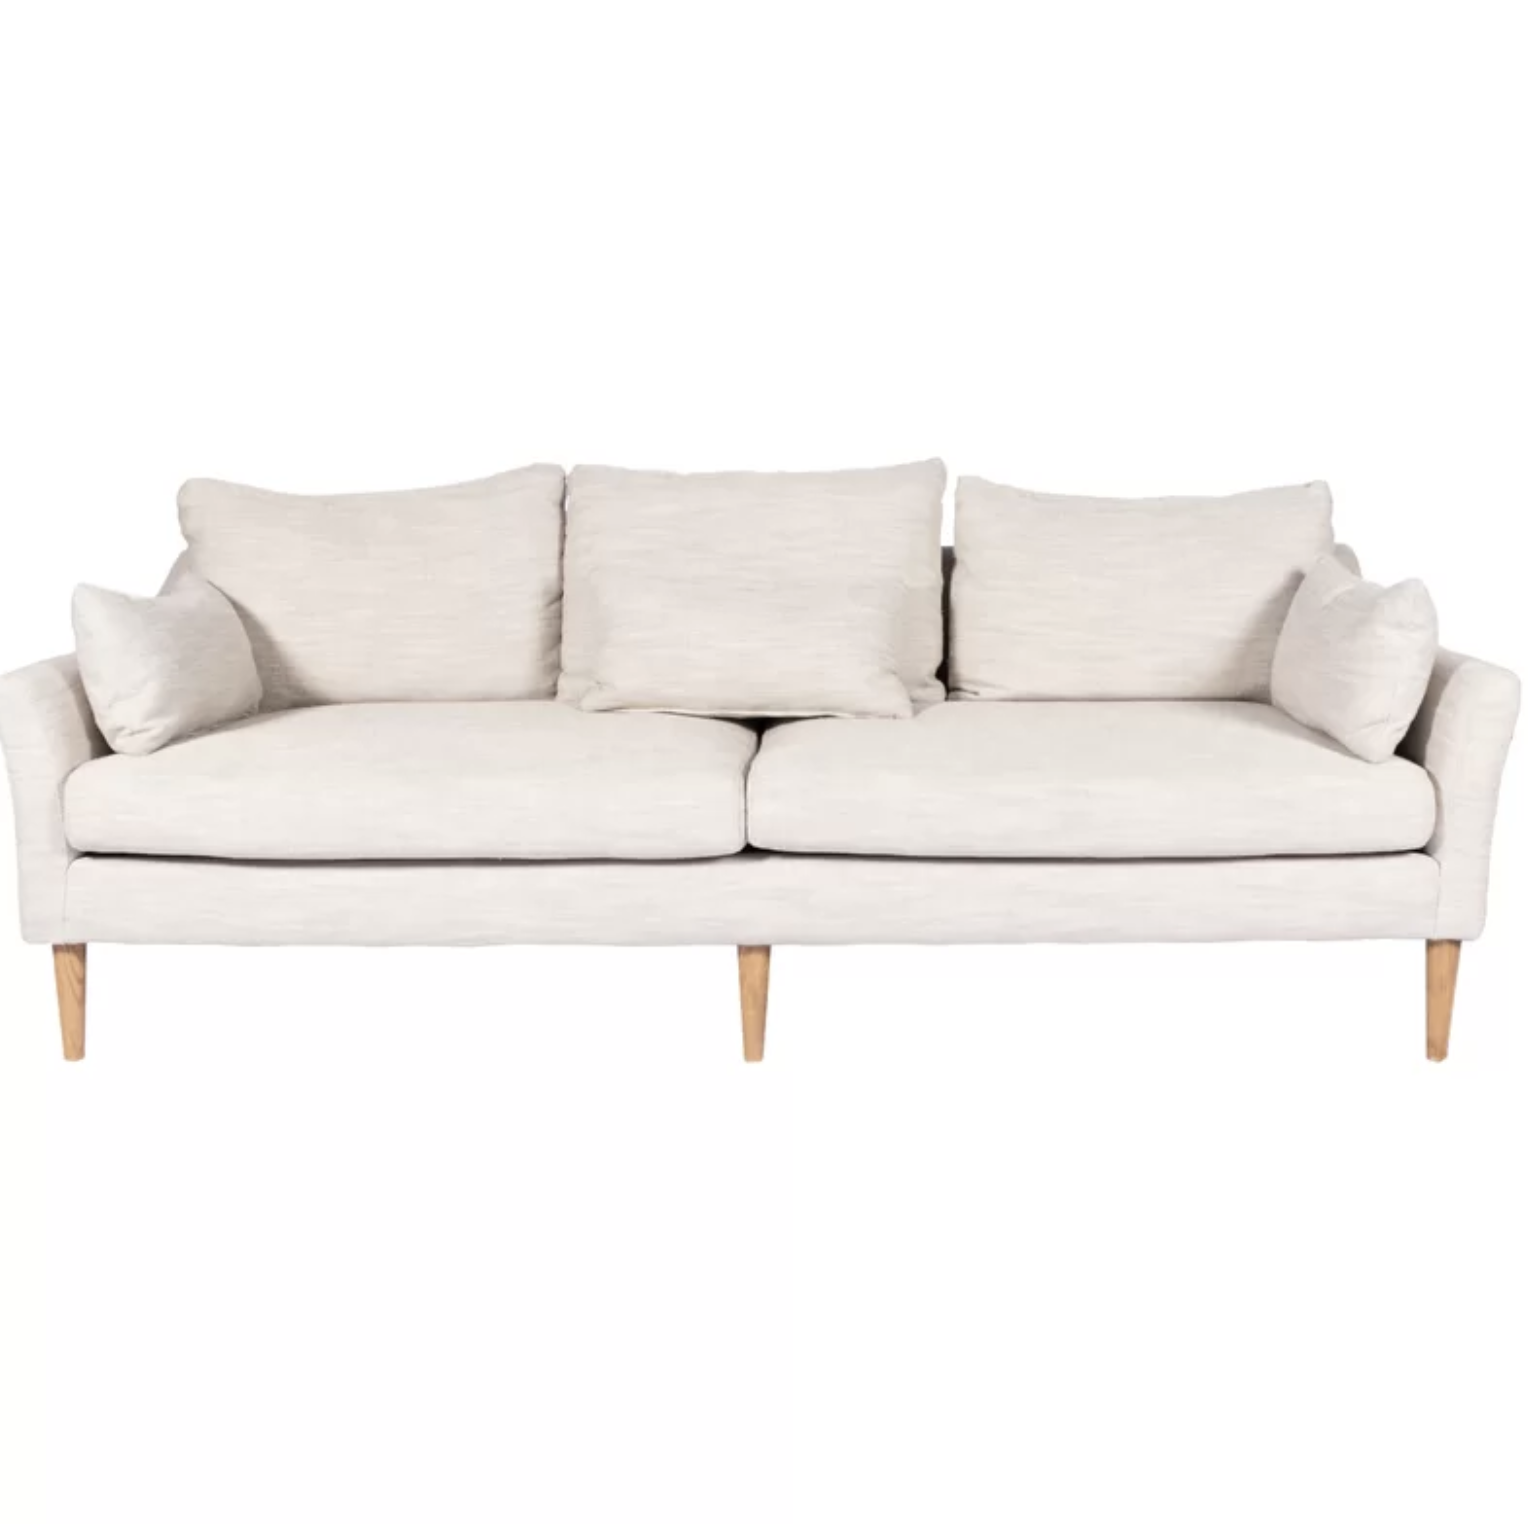 Super Where To Buy A Sofa The Domino Guide Dailytribune Chair Design For Home Dailytribuneorg